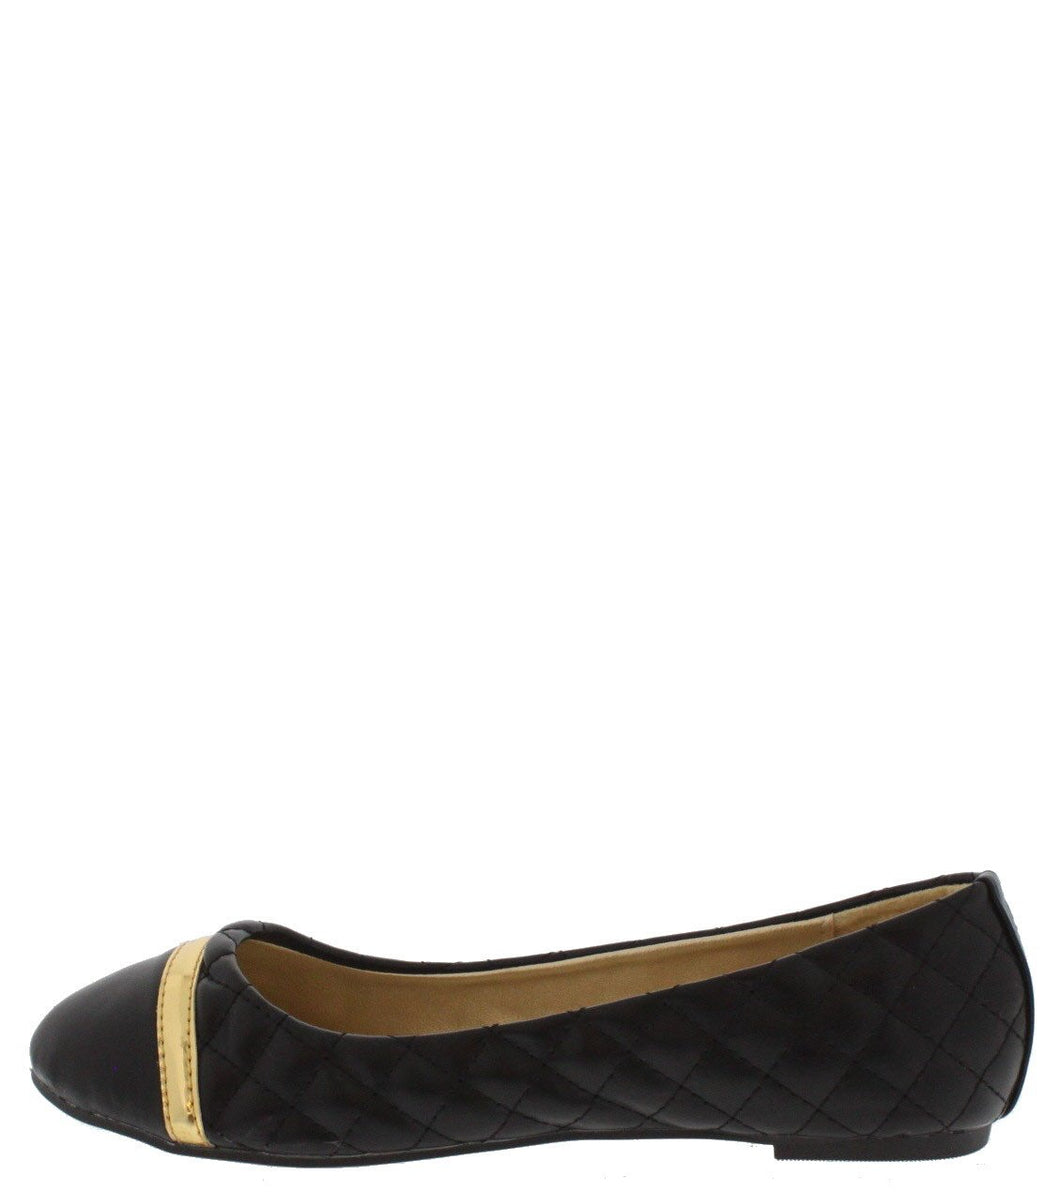 Liria1 Black Quilted Ballet Flat